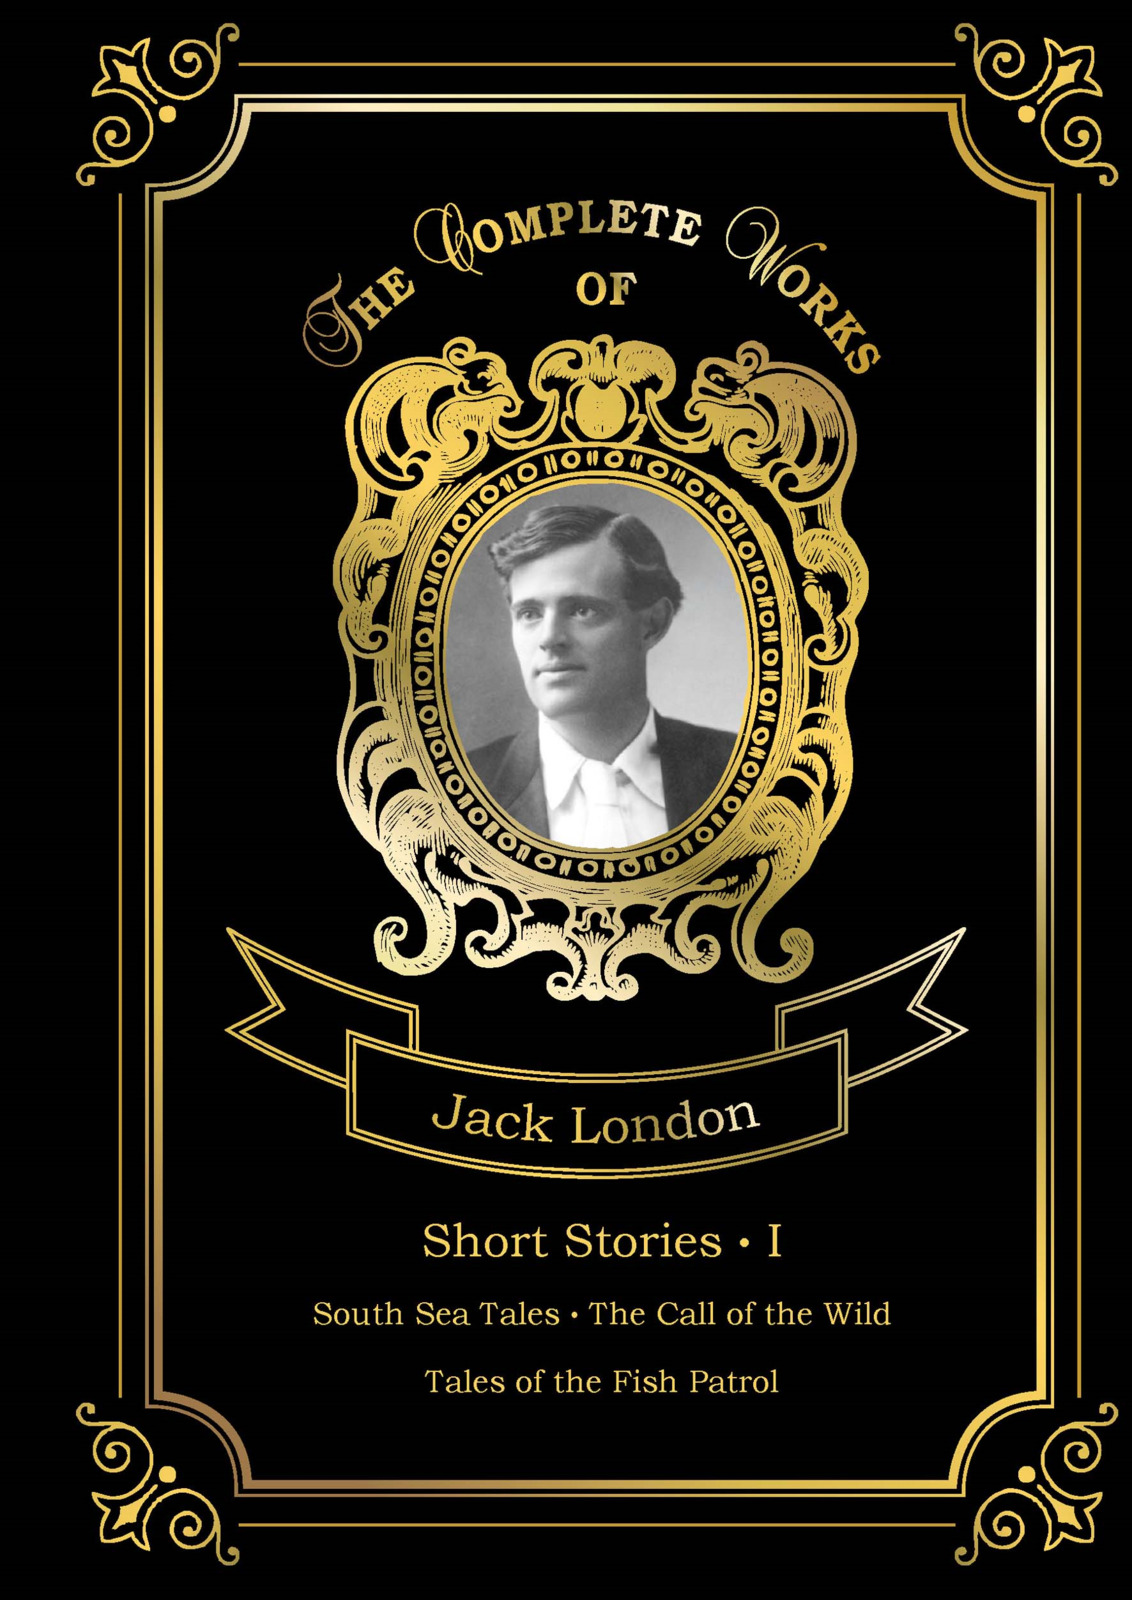 Jack London Short Stories I a set of warmth knitting sofa mermaid blanket and neckerchief